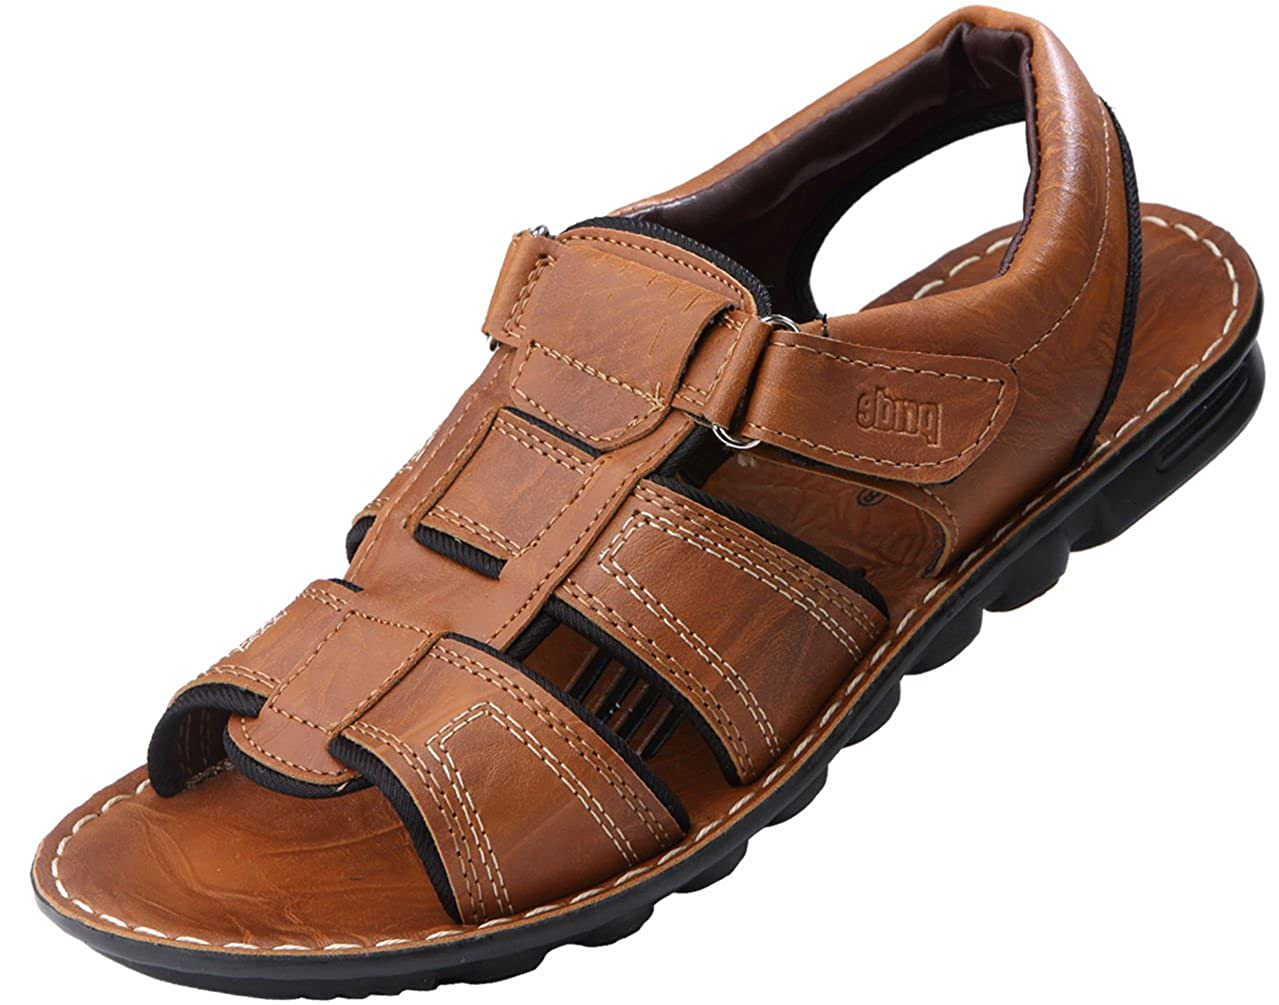 225bf3a1451db VKC Pride Men's Synthetic Leather Sandals: Buy Online at Low Prices in  India - Amazon.in